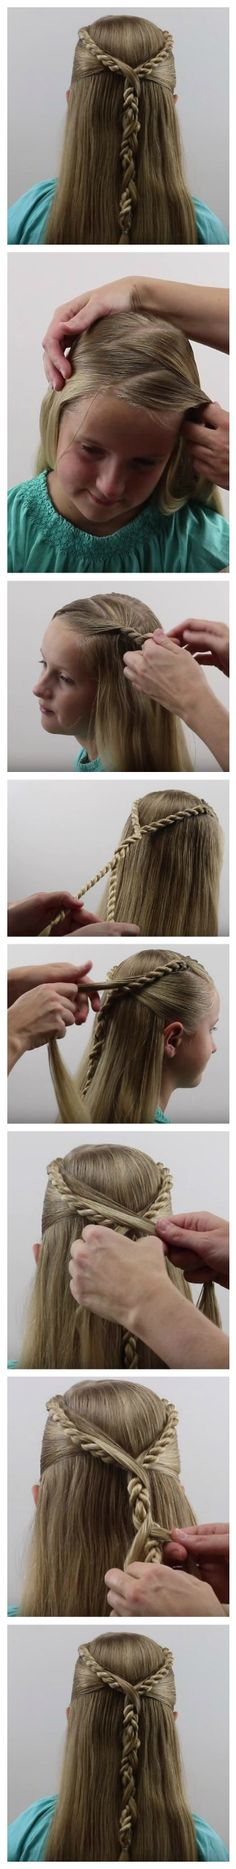 Beautiful Hairstyle -- Rope Twist Hawser Brid Pullback -- #braid #hair #ropebraid #hairstyle #basic_braids #how_to_Braid #alhamdulillah